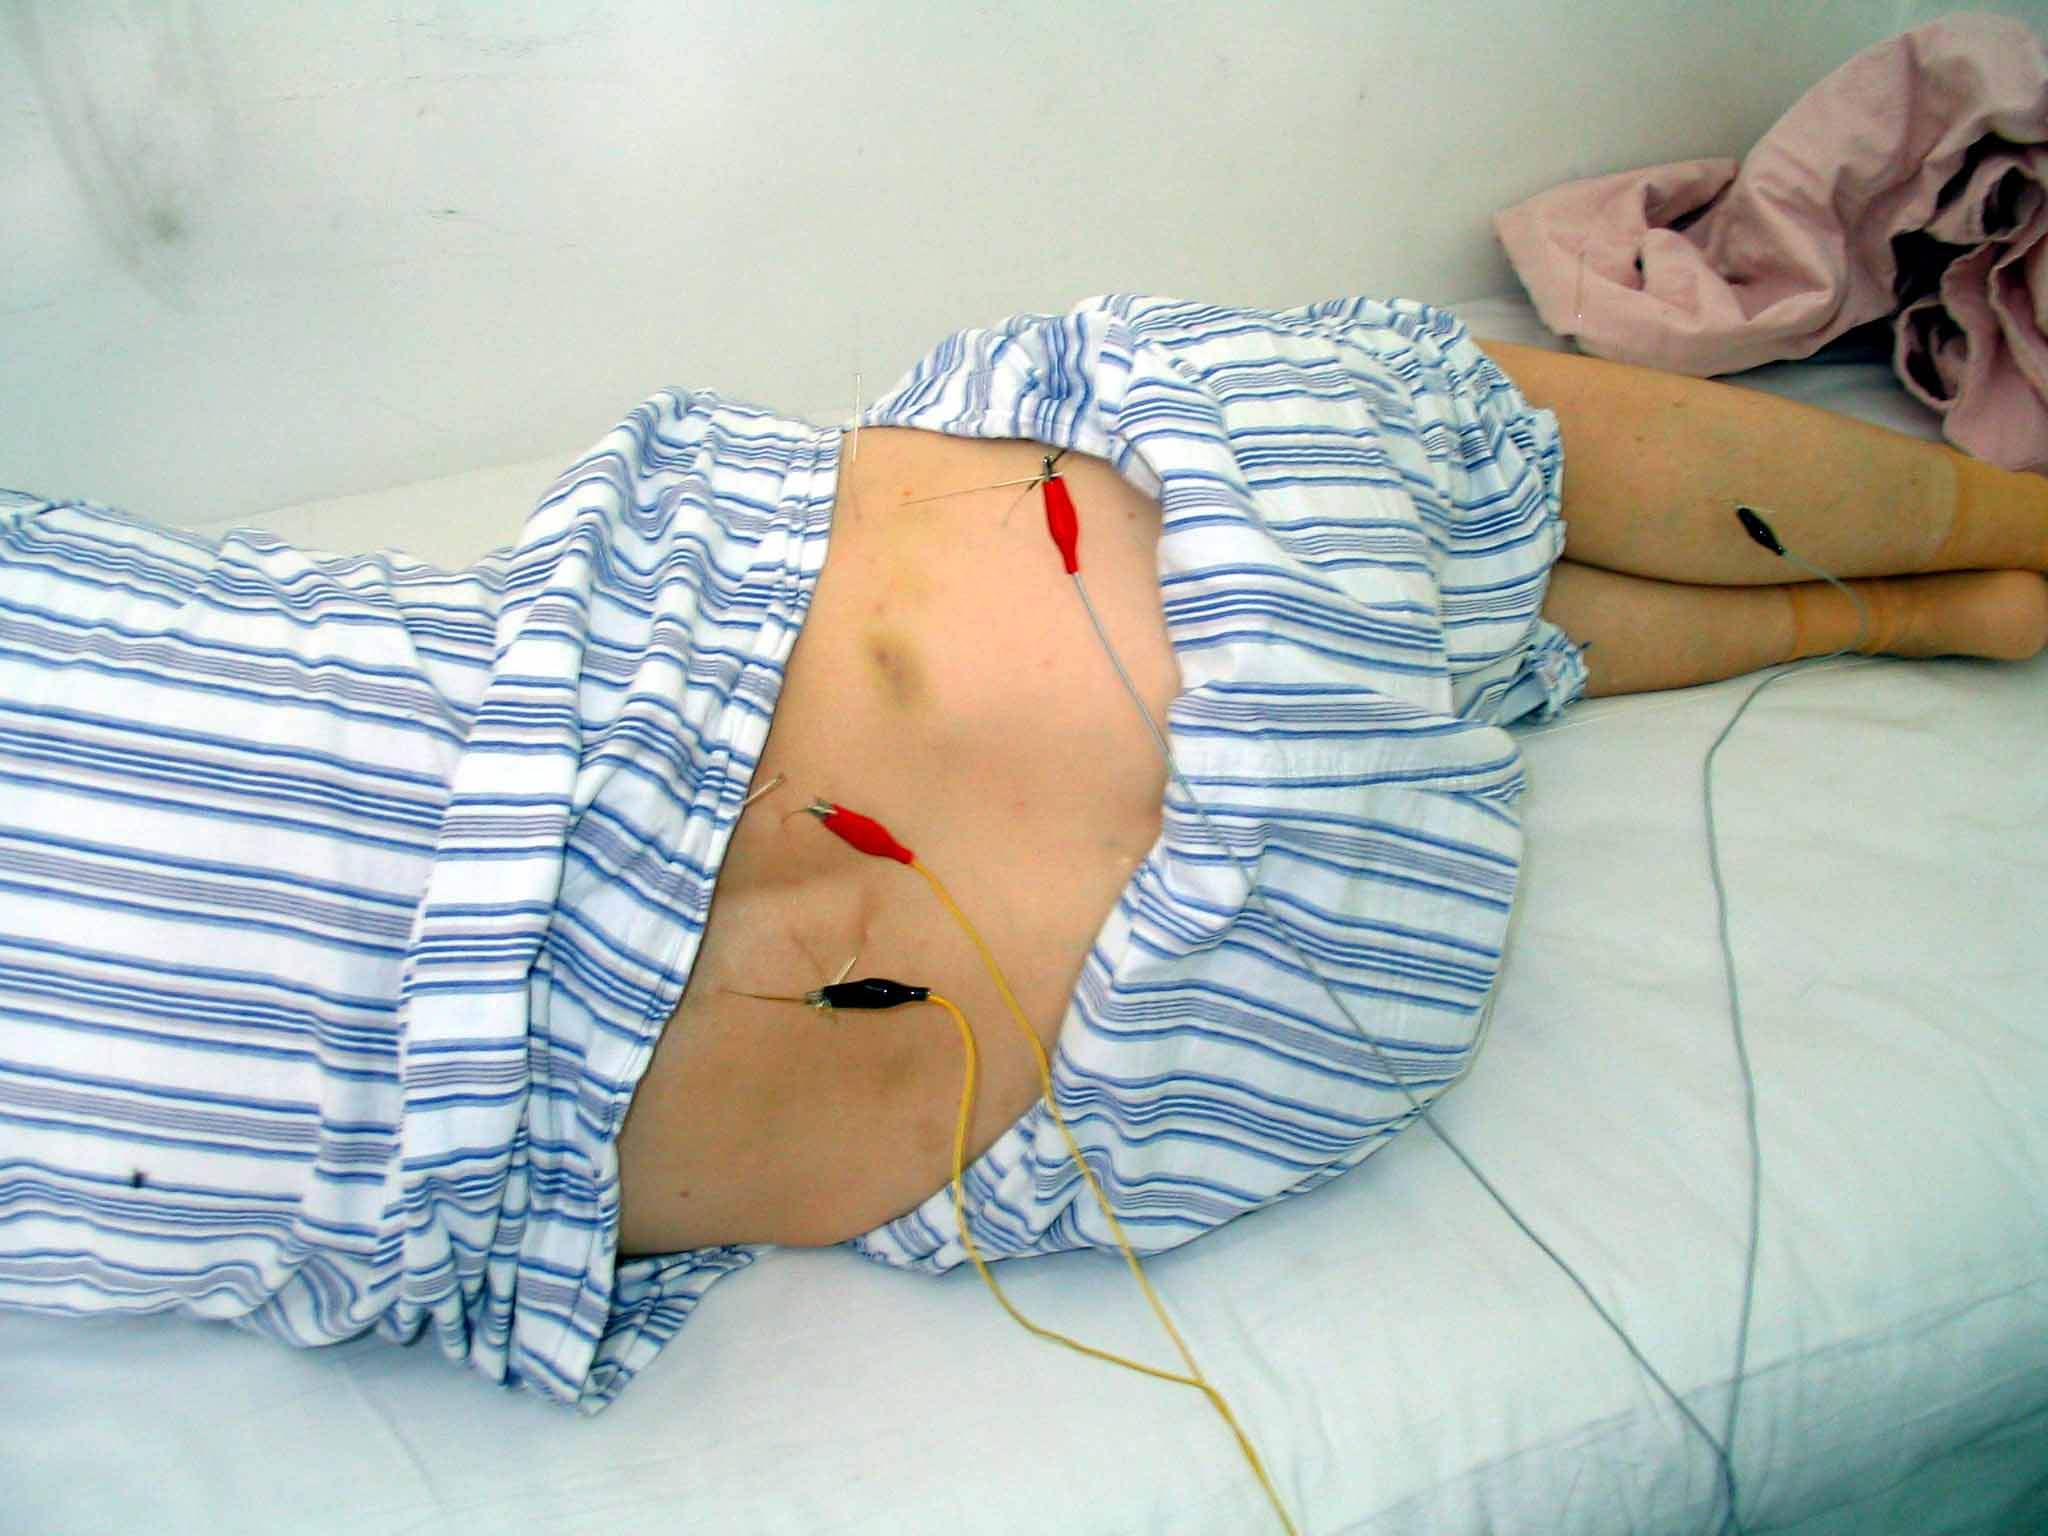 accupuncture for back pain New advice represents a u-turn in treatment for back pain, which affects one in 10  people, after evidence review showed acupuncture no better.